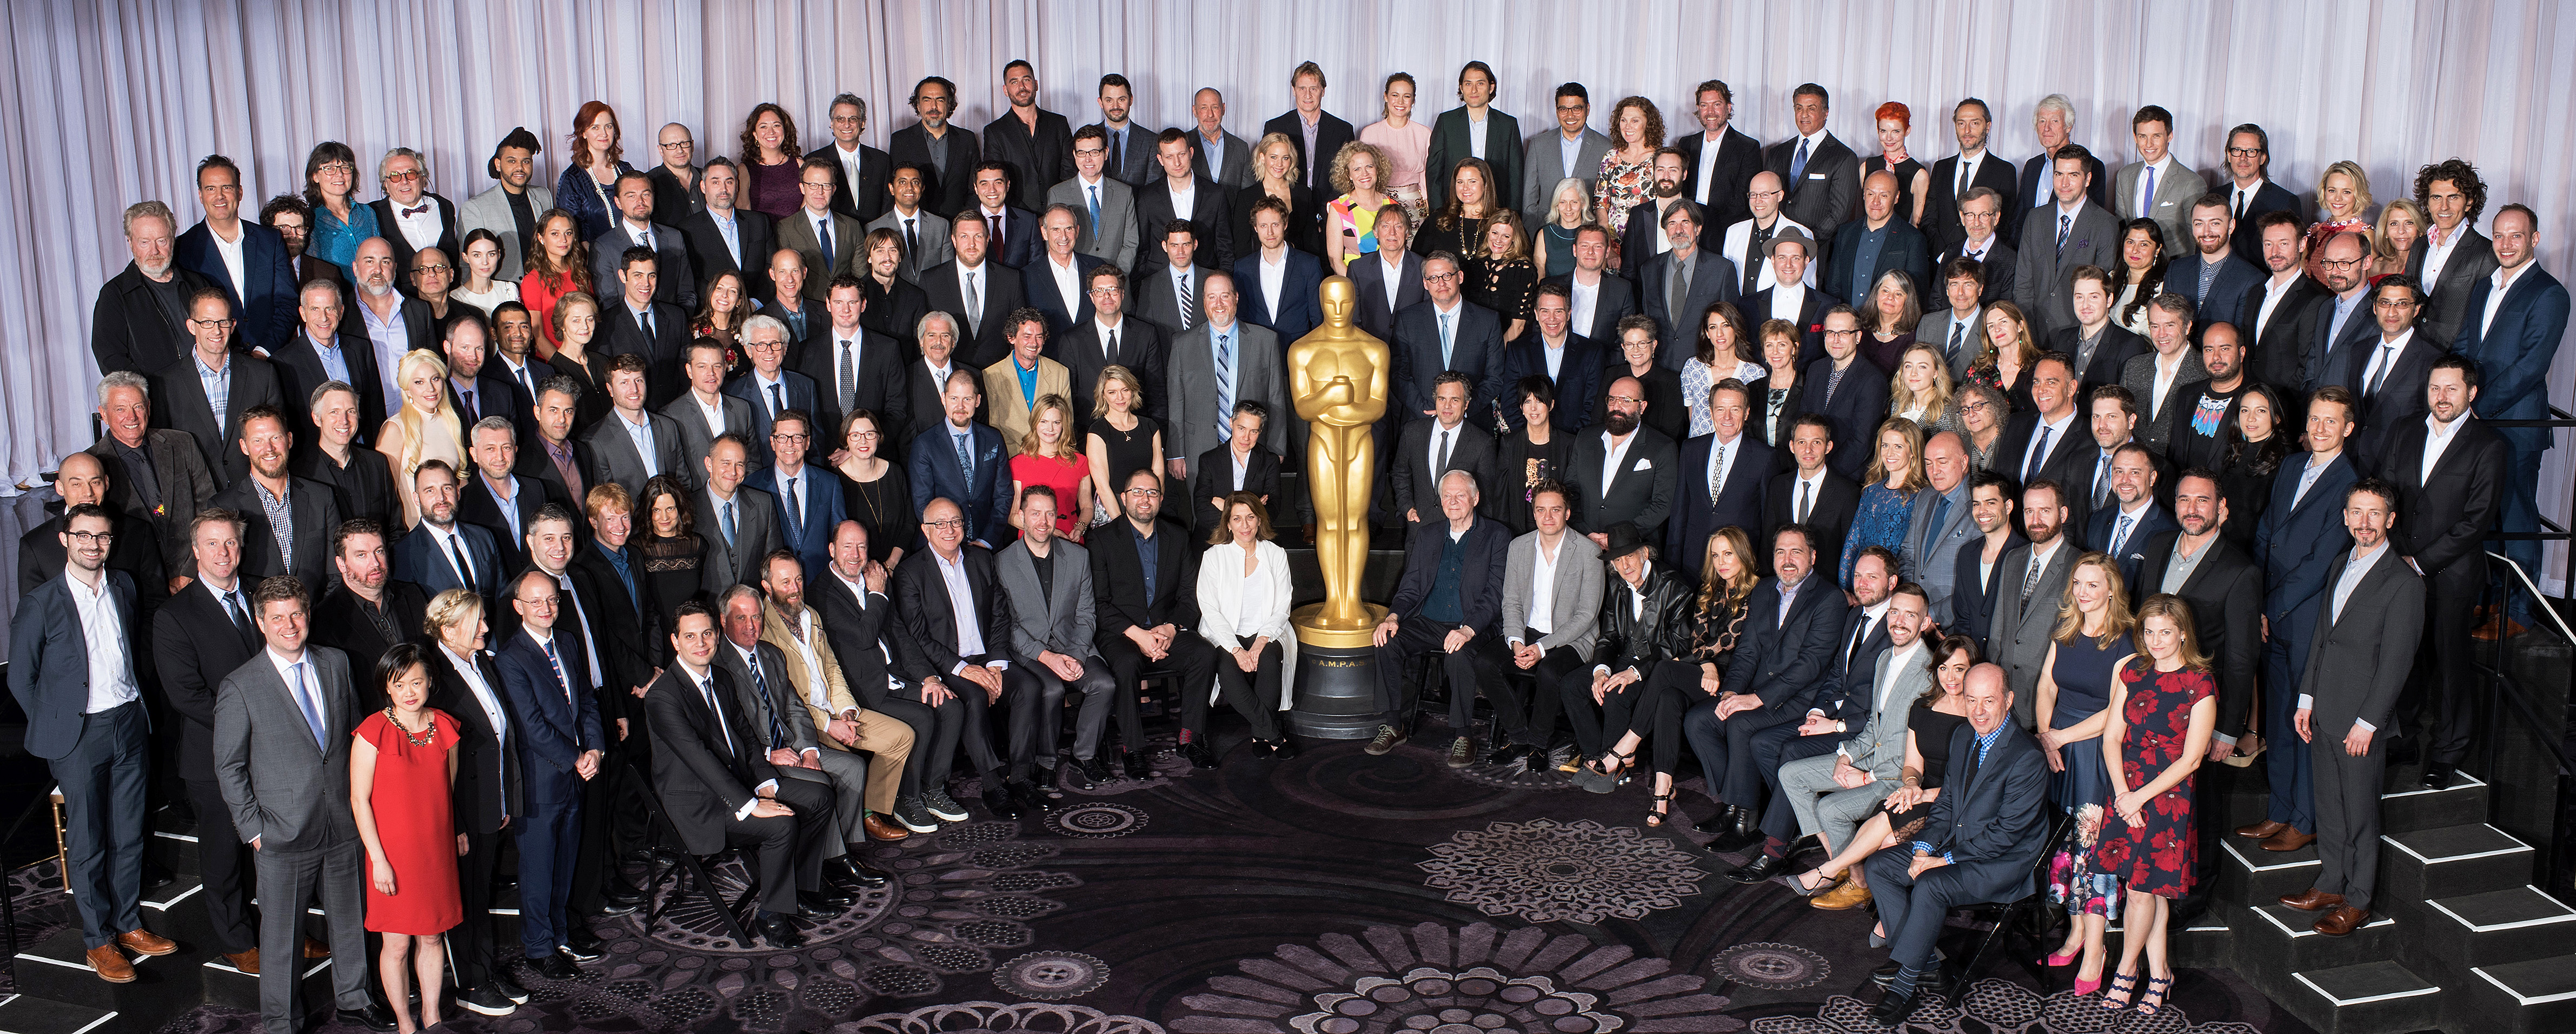 The white face(s) of Hollywood: Oscars class of 2016 including Jennifer Lawrence, DiCaprio and Stallone meet for nominees lunch ahead of Awards